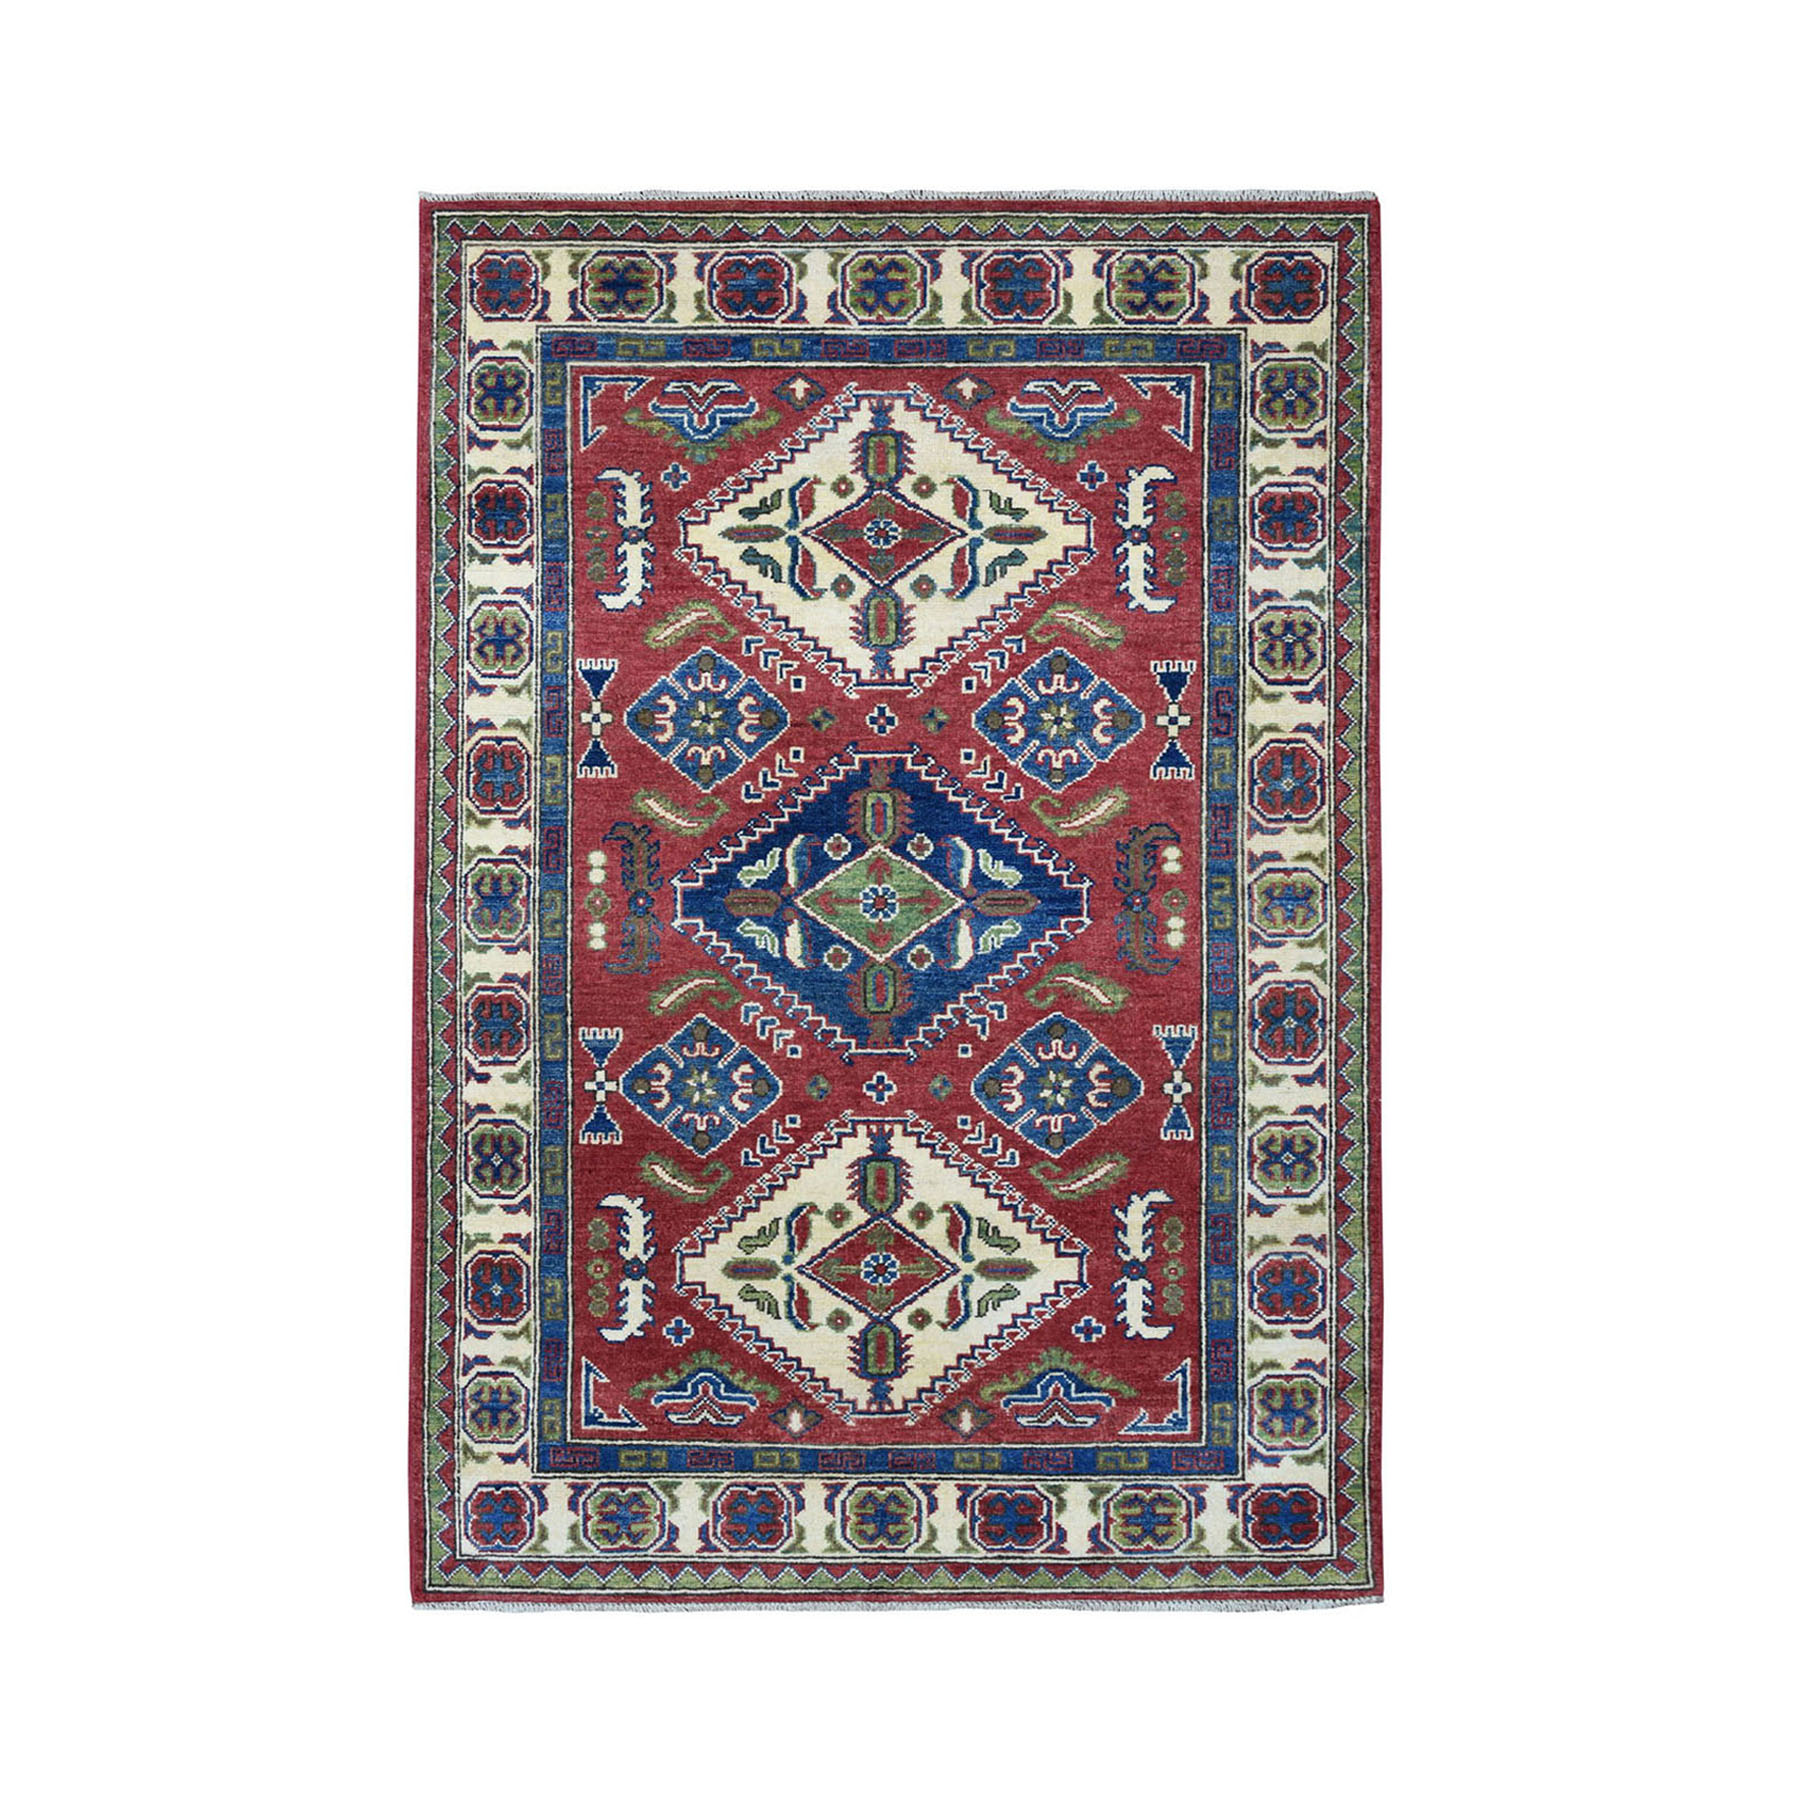 4'X6' Red Geometric Design Kazak Pure Wool Hand-Knotted Oriental Rug moae08ed